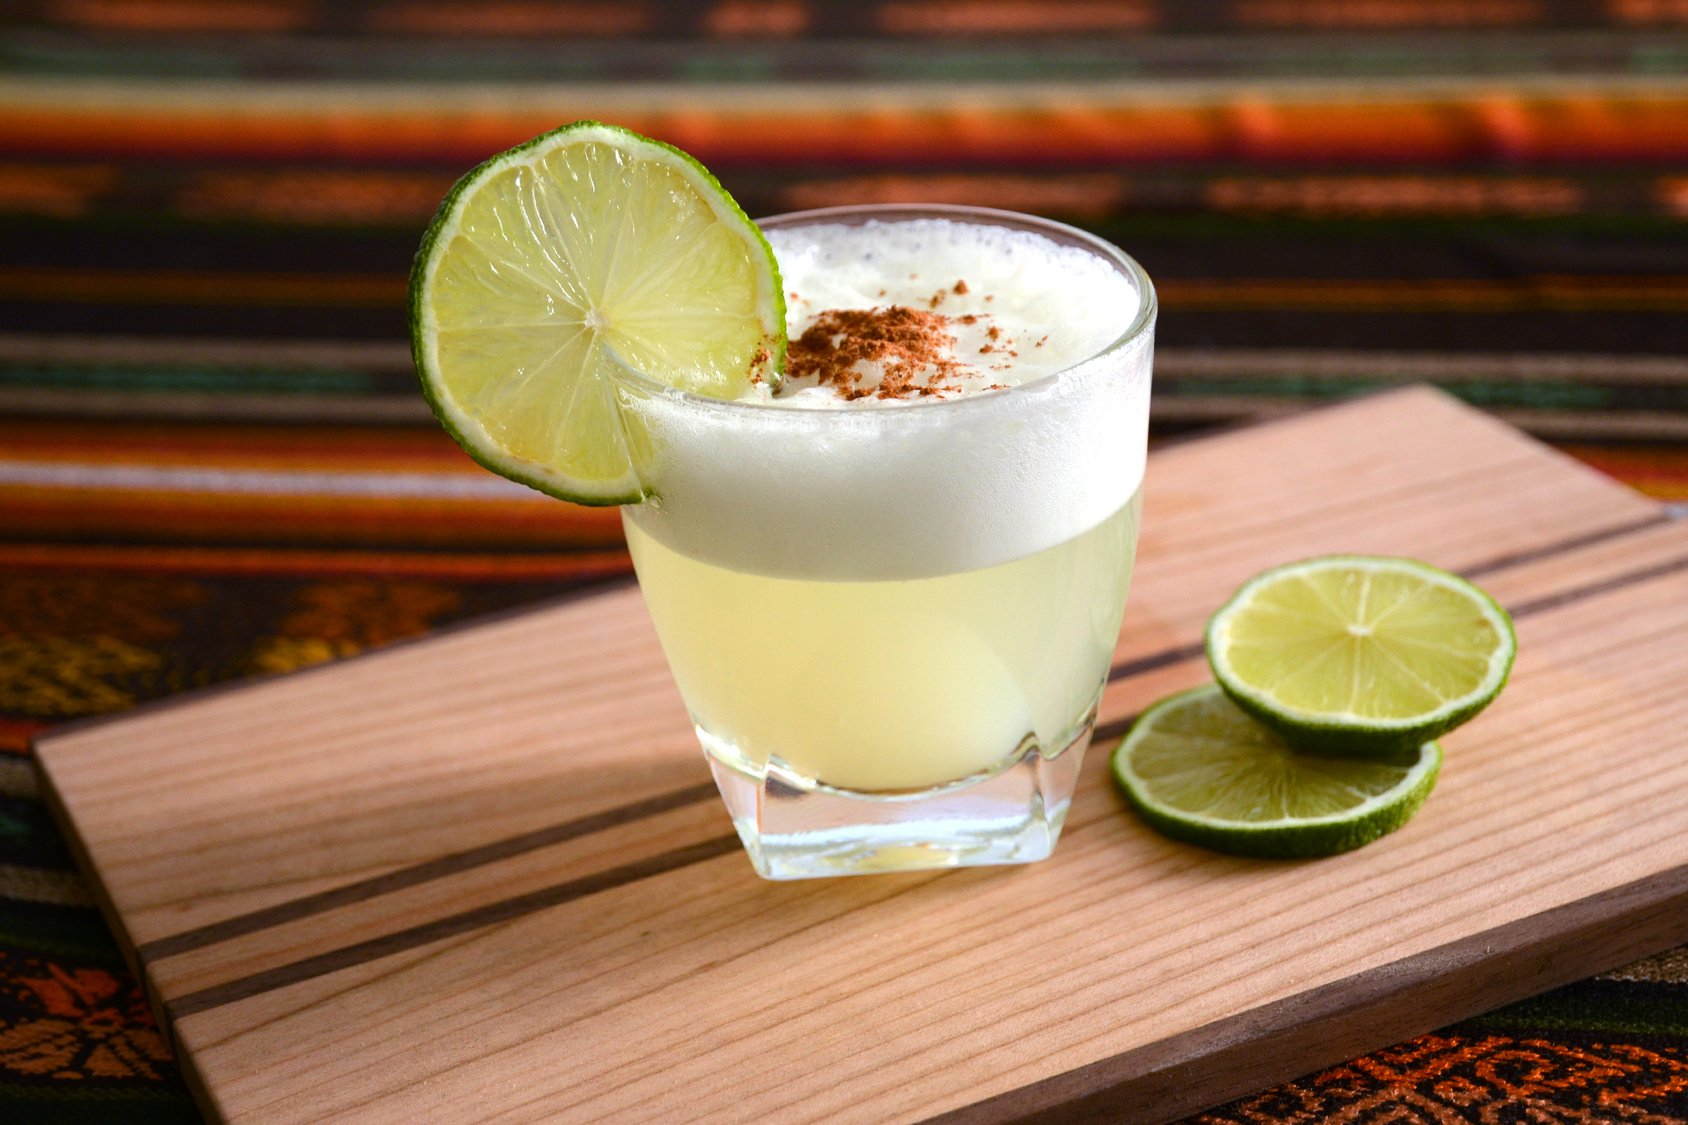 How to make Pisco Sour